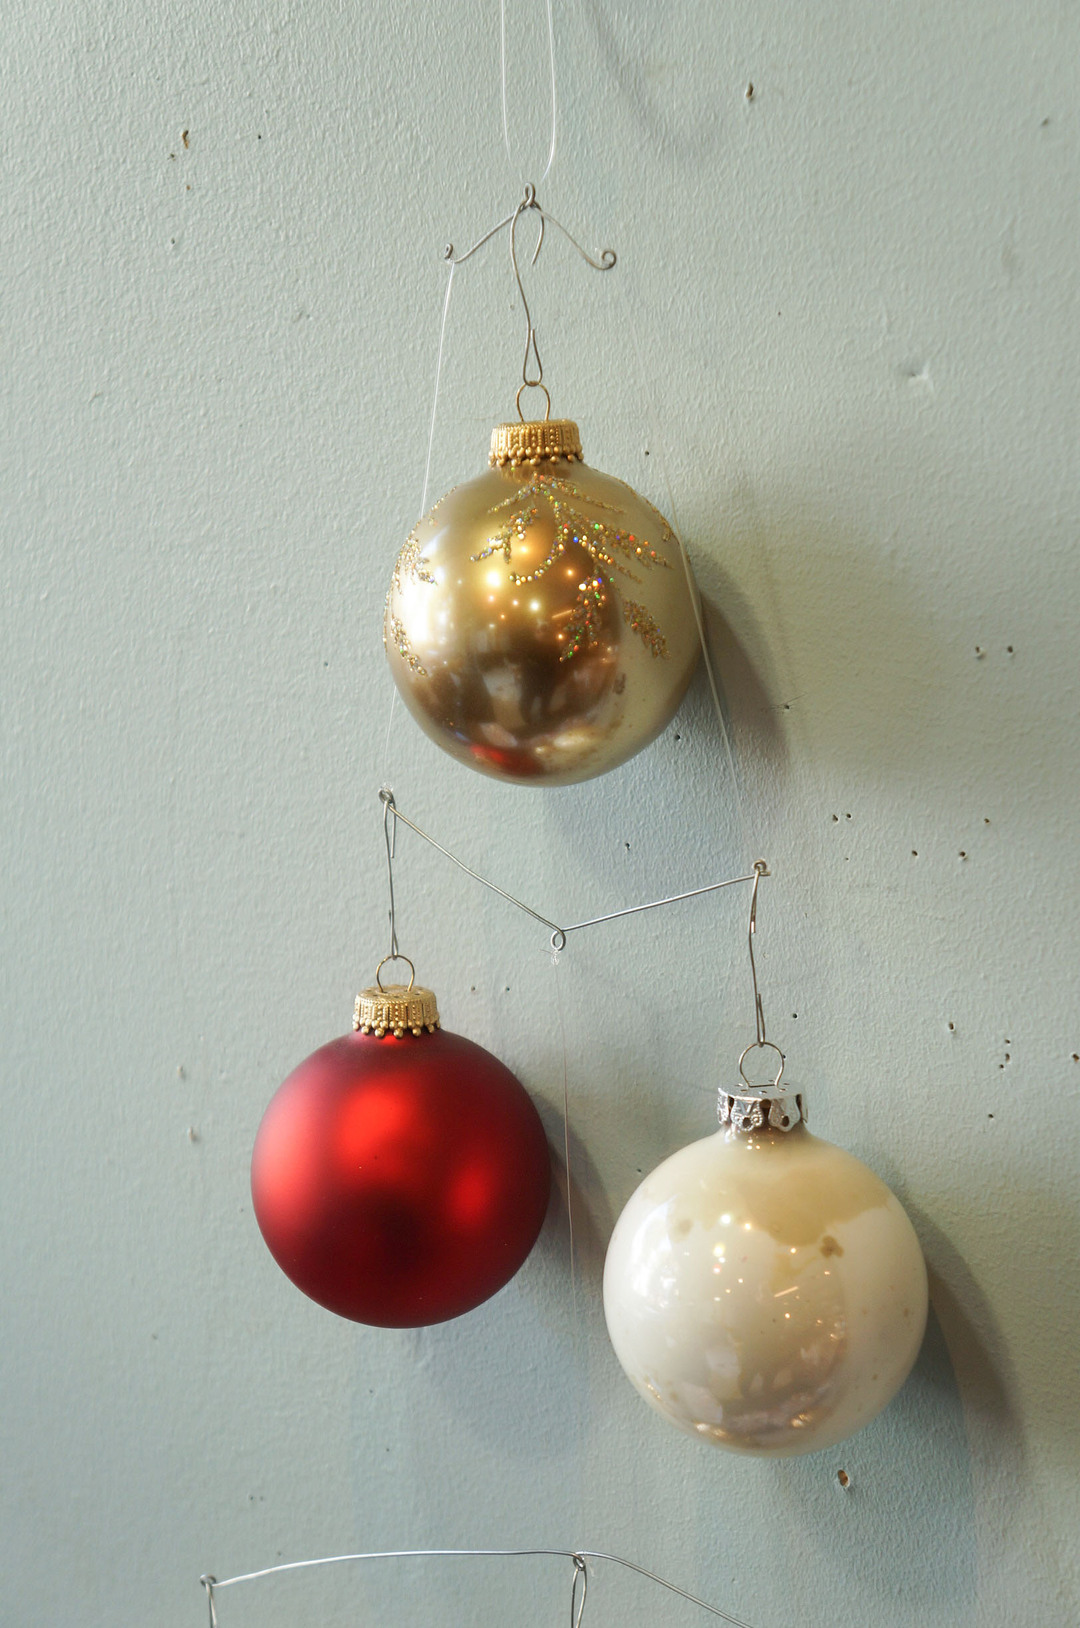 Vintage Blown Glass Christmas Ball Ornament/ヴィンテージ クリスマス オーナメント 吹きガラス ボール レトロ 6個セット 10